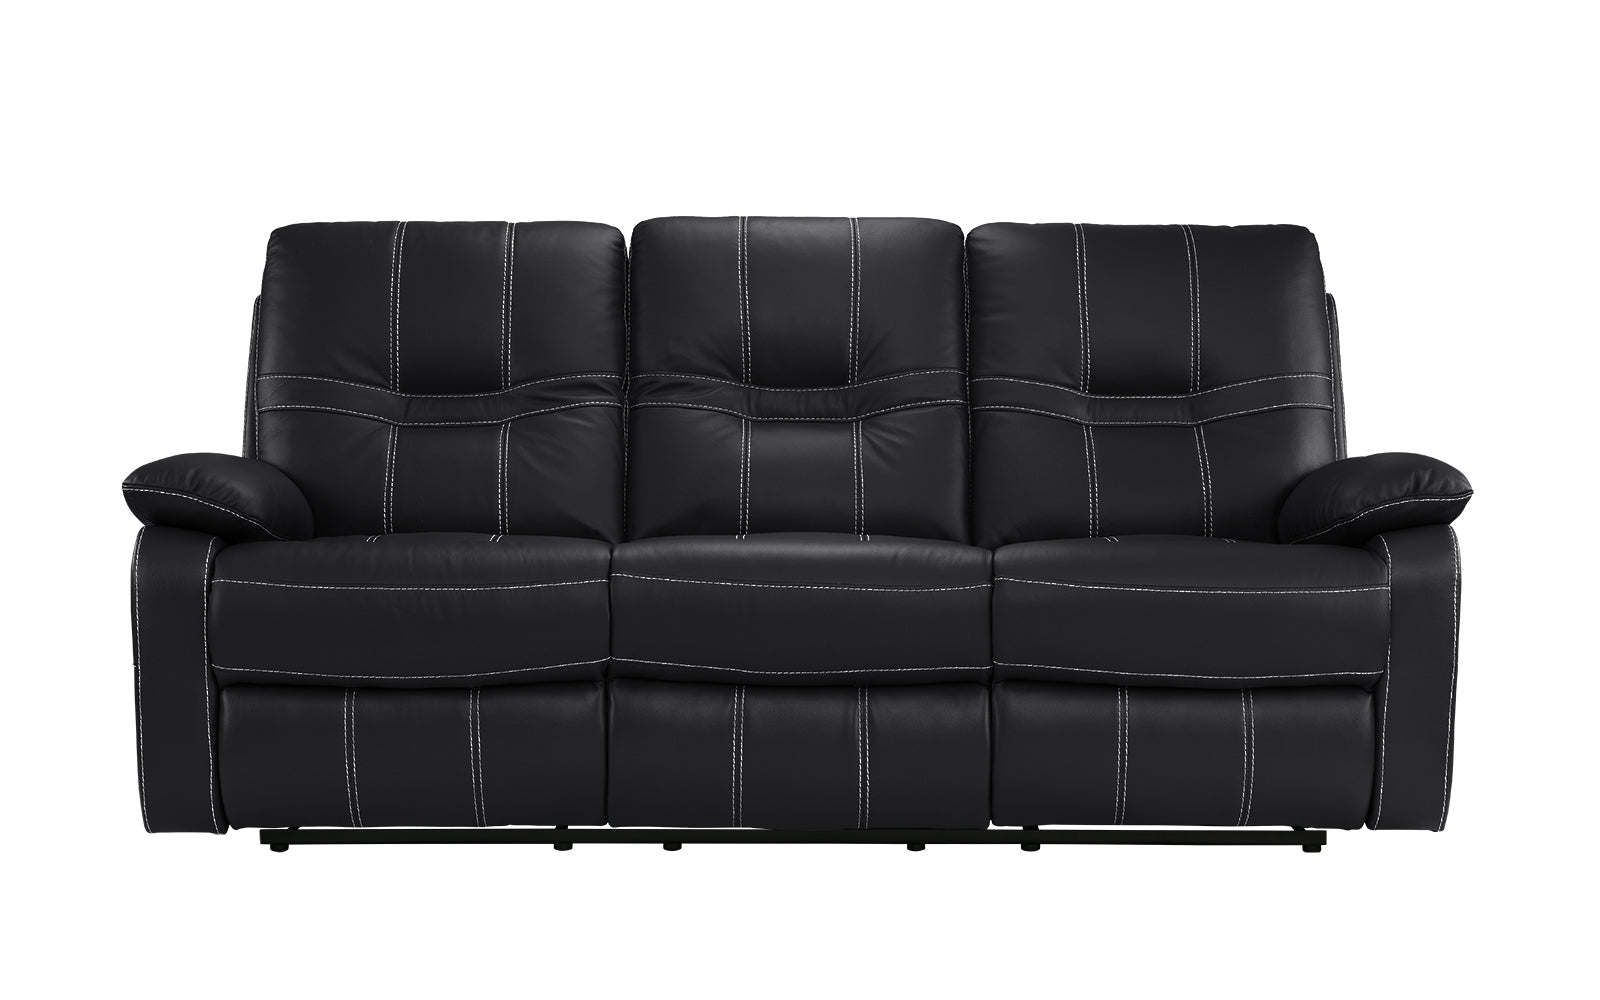 Carter Modern Reclining Leather Sofa